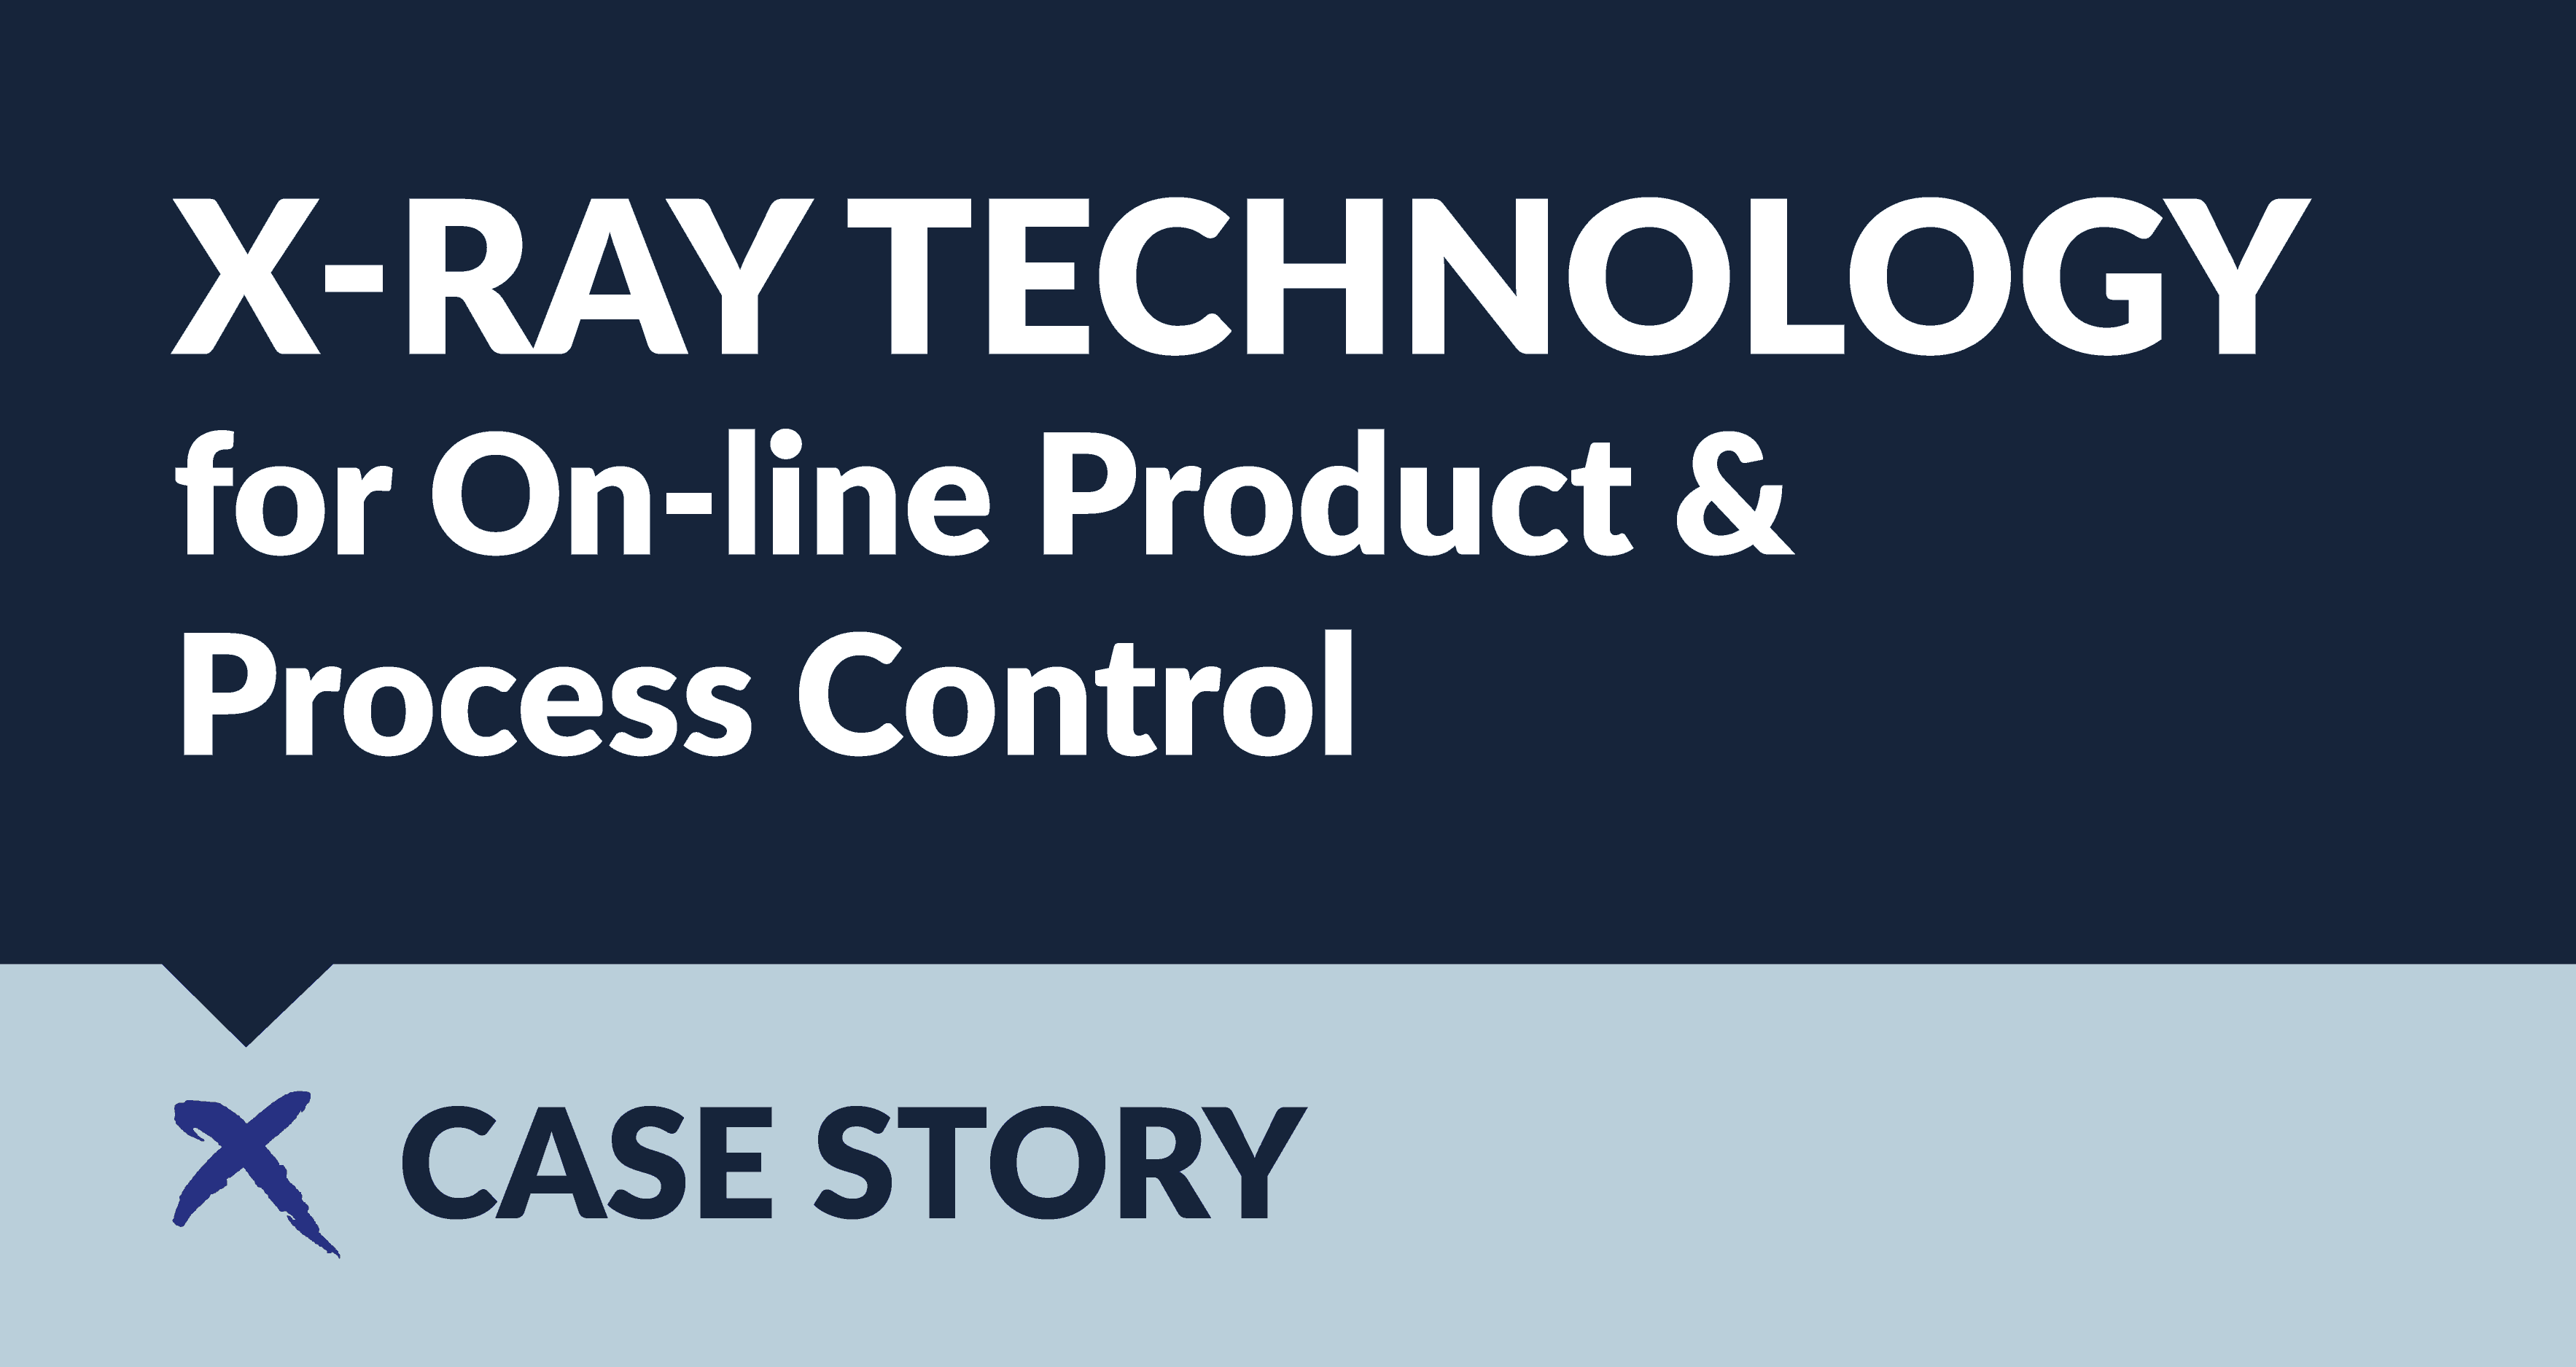 Case story - X-ray Technology for On-line Product & Process Control - Innospexion